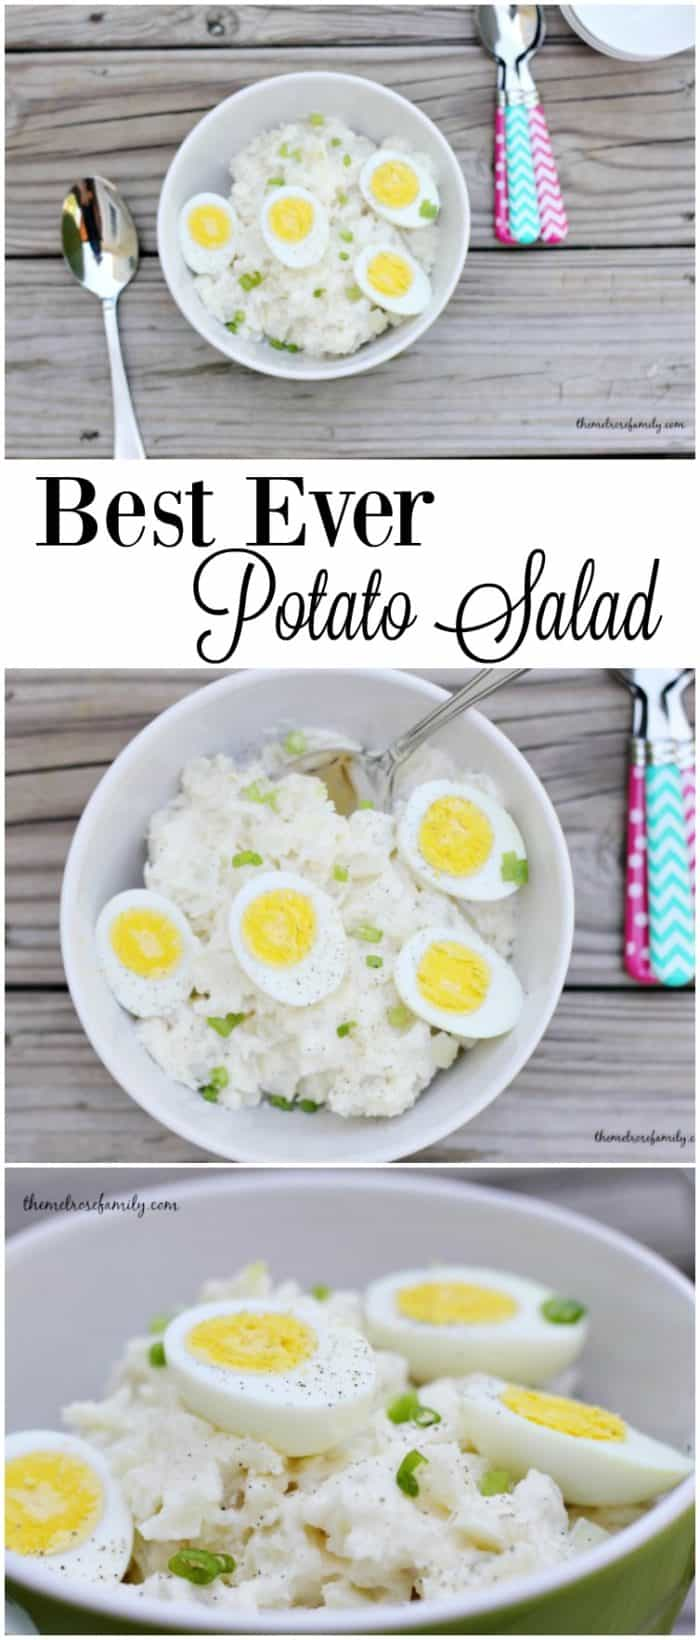 In need of the perfect side dish for a barbecue or get-together Our Best Ever Potato Salad is an amazingly tasty salad that compliments any barbecue.